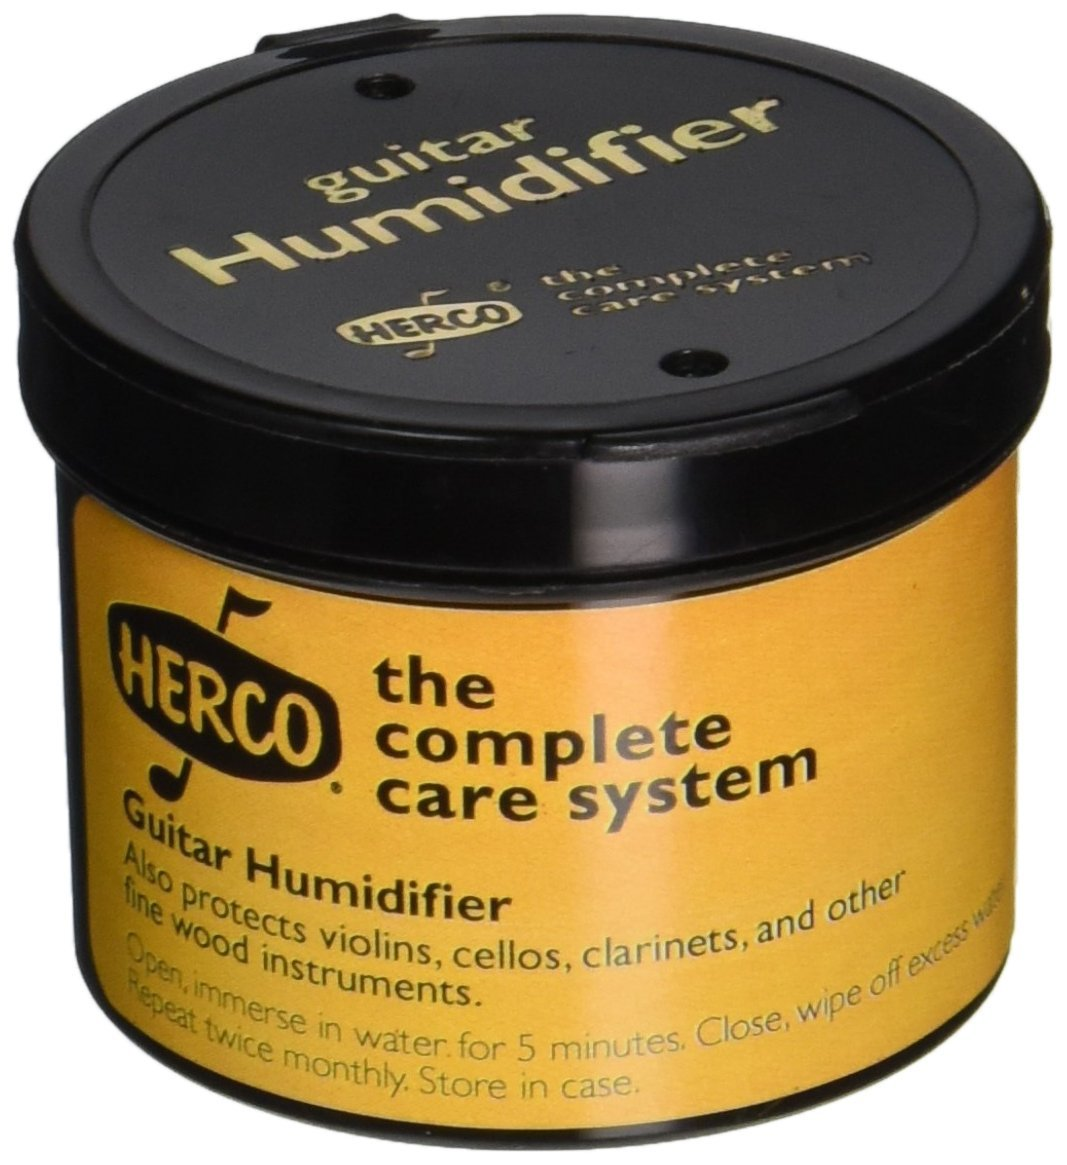 Herco HE360 The Guardfather Guitar Humidifier